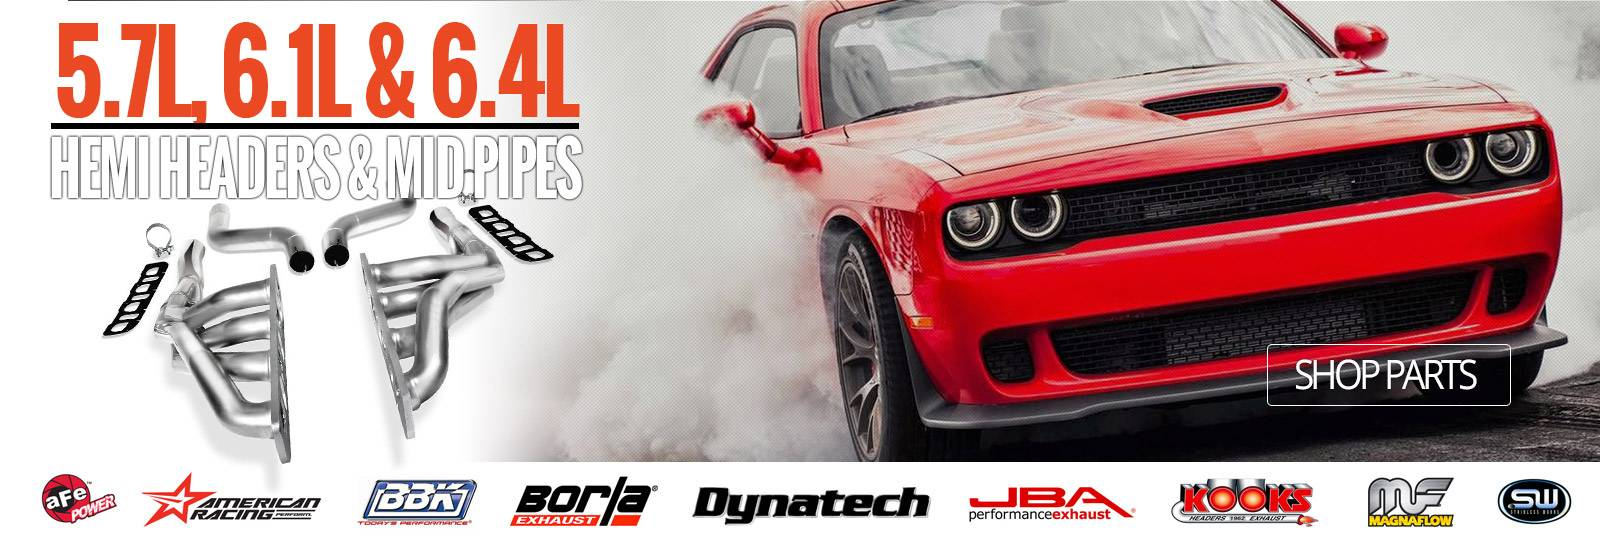 Hemi Performance Parts Accessories Superstore 08 Dodge Charger Aftermarket Wiring Harness Gallery Image